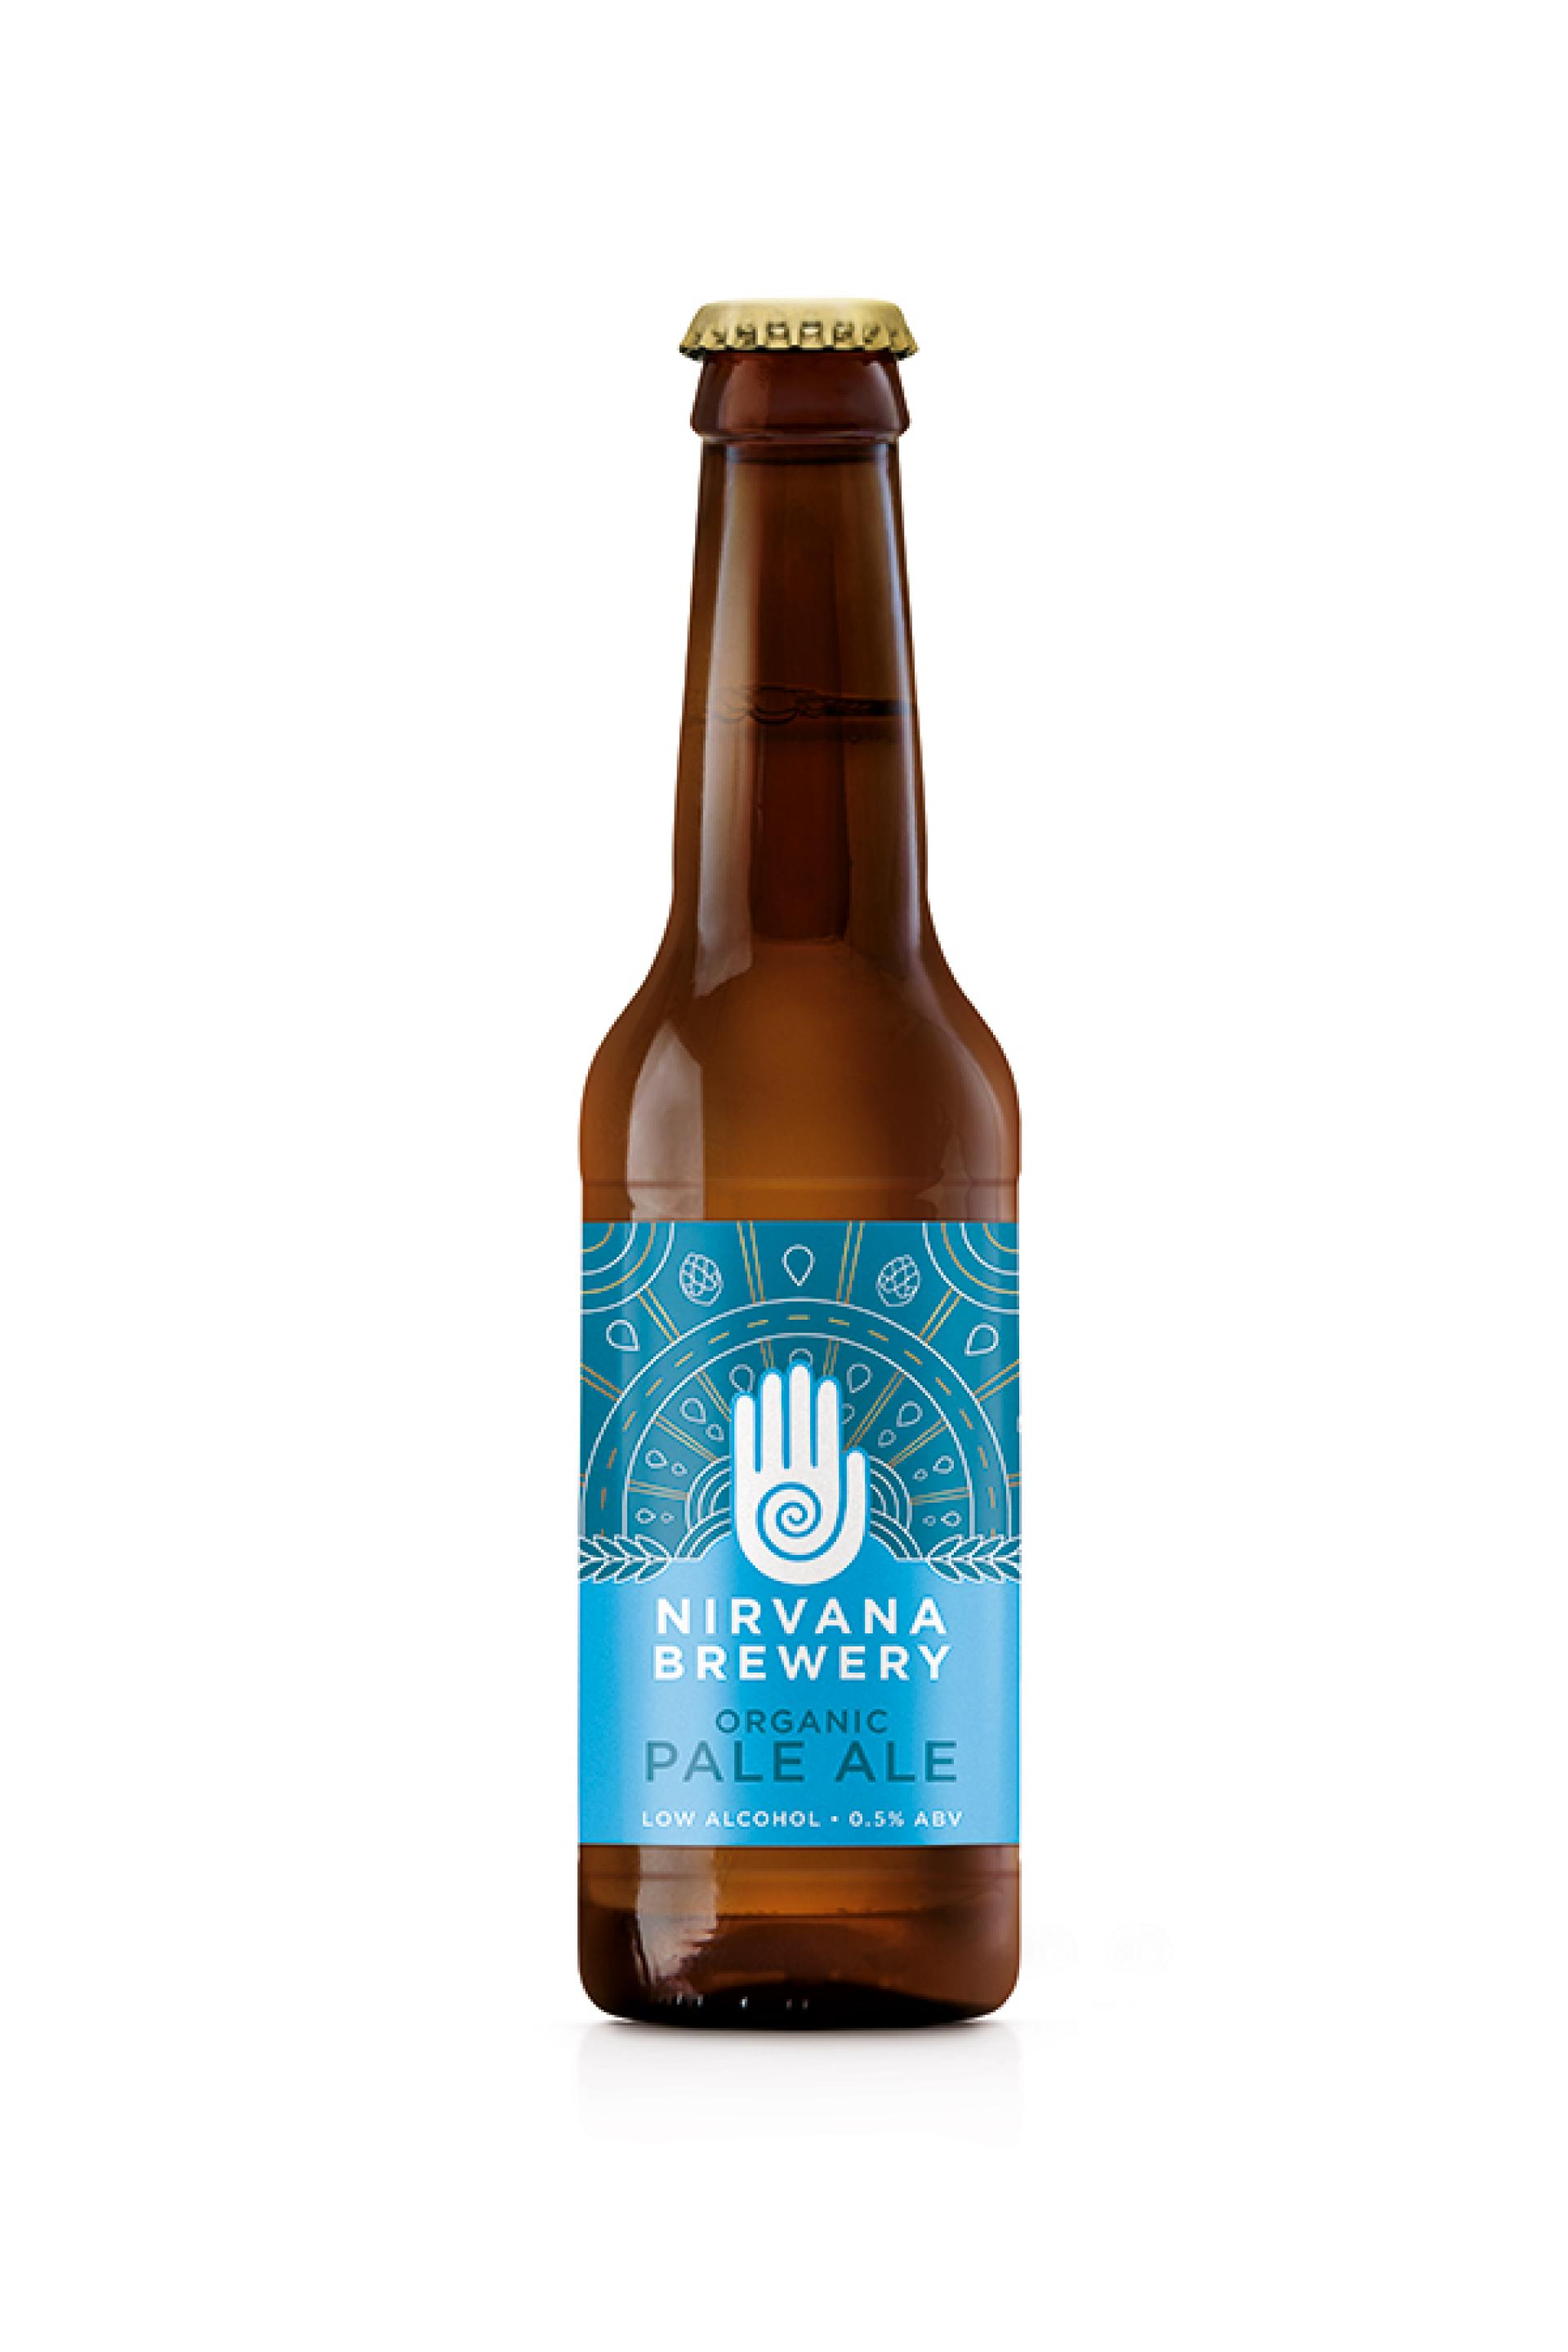 Non Alcoholic Beers London – Nirvana Brewery's Organic Pale Ale – 0.5% ABV